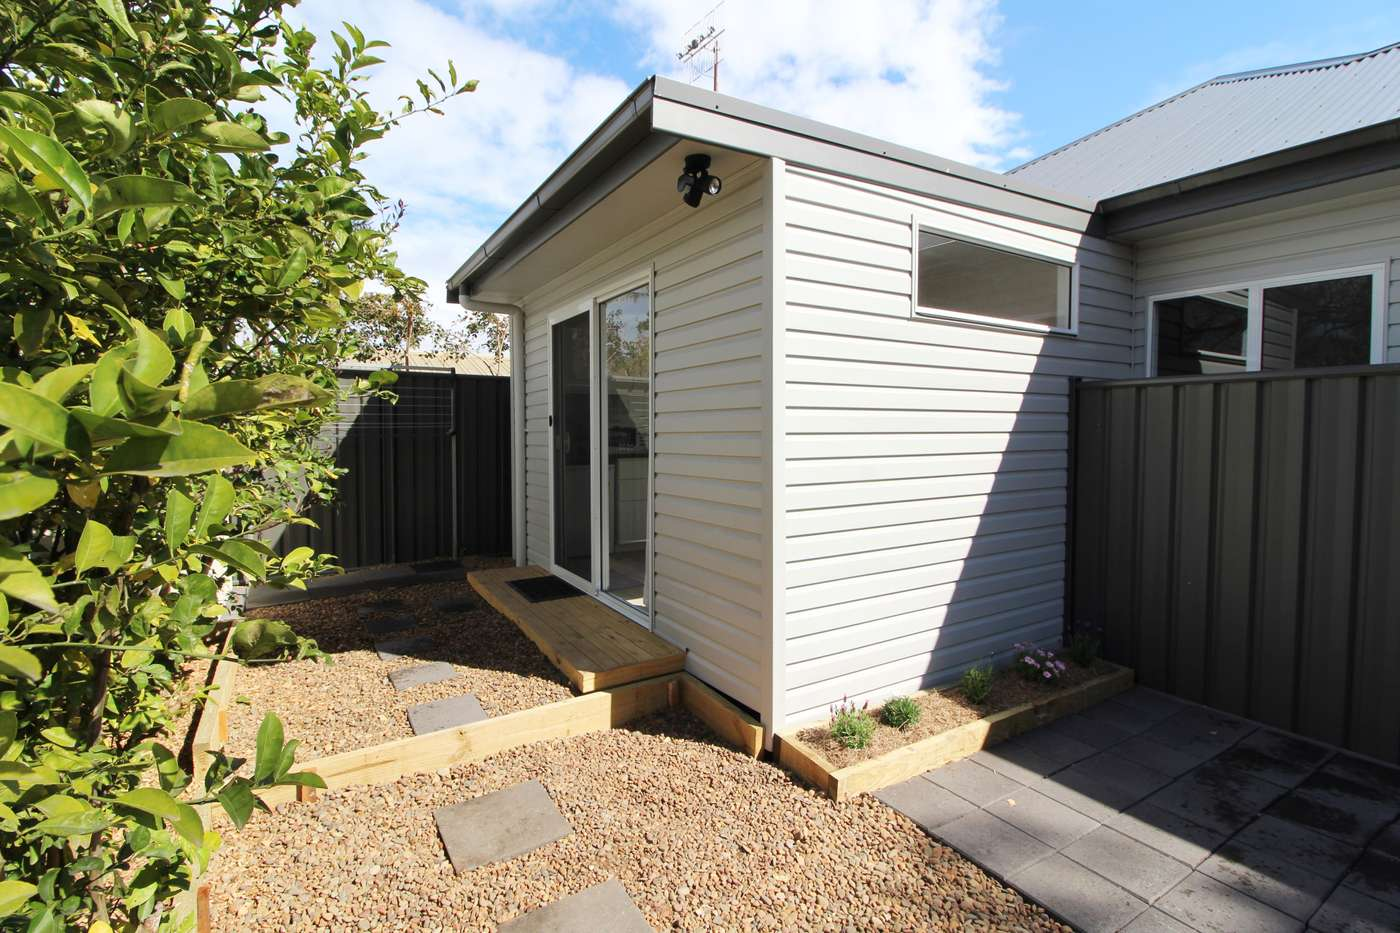 Main view of Homely house listing, 24c Cambridge Street, Umina Beach, NSW 2257